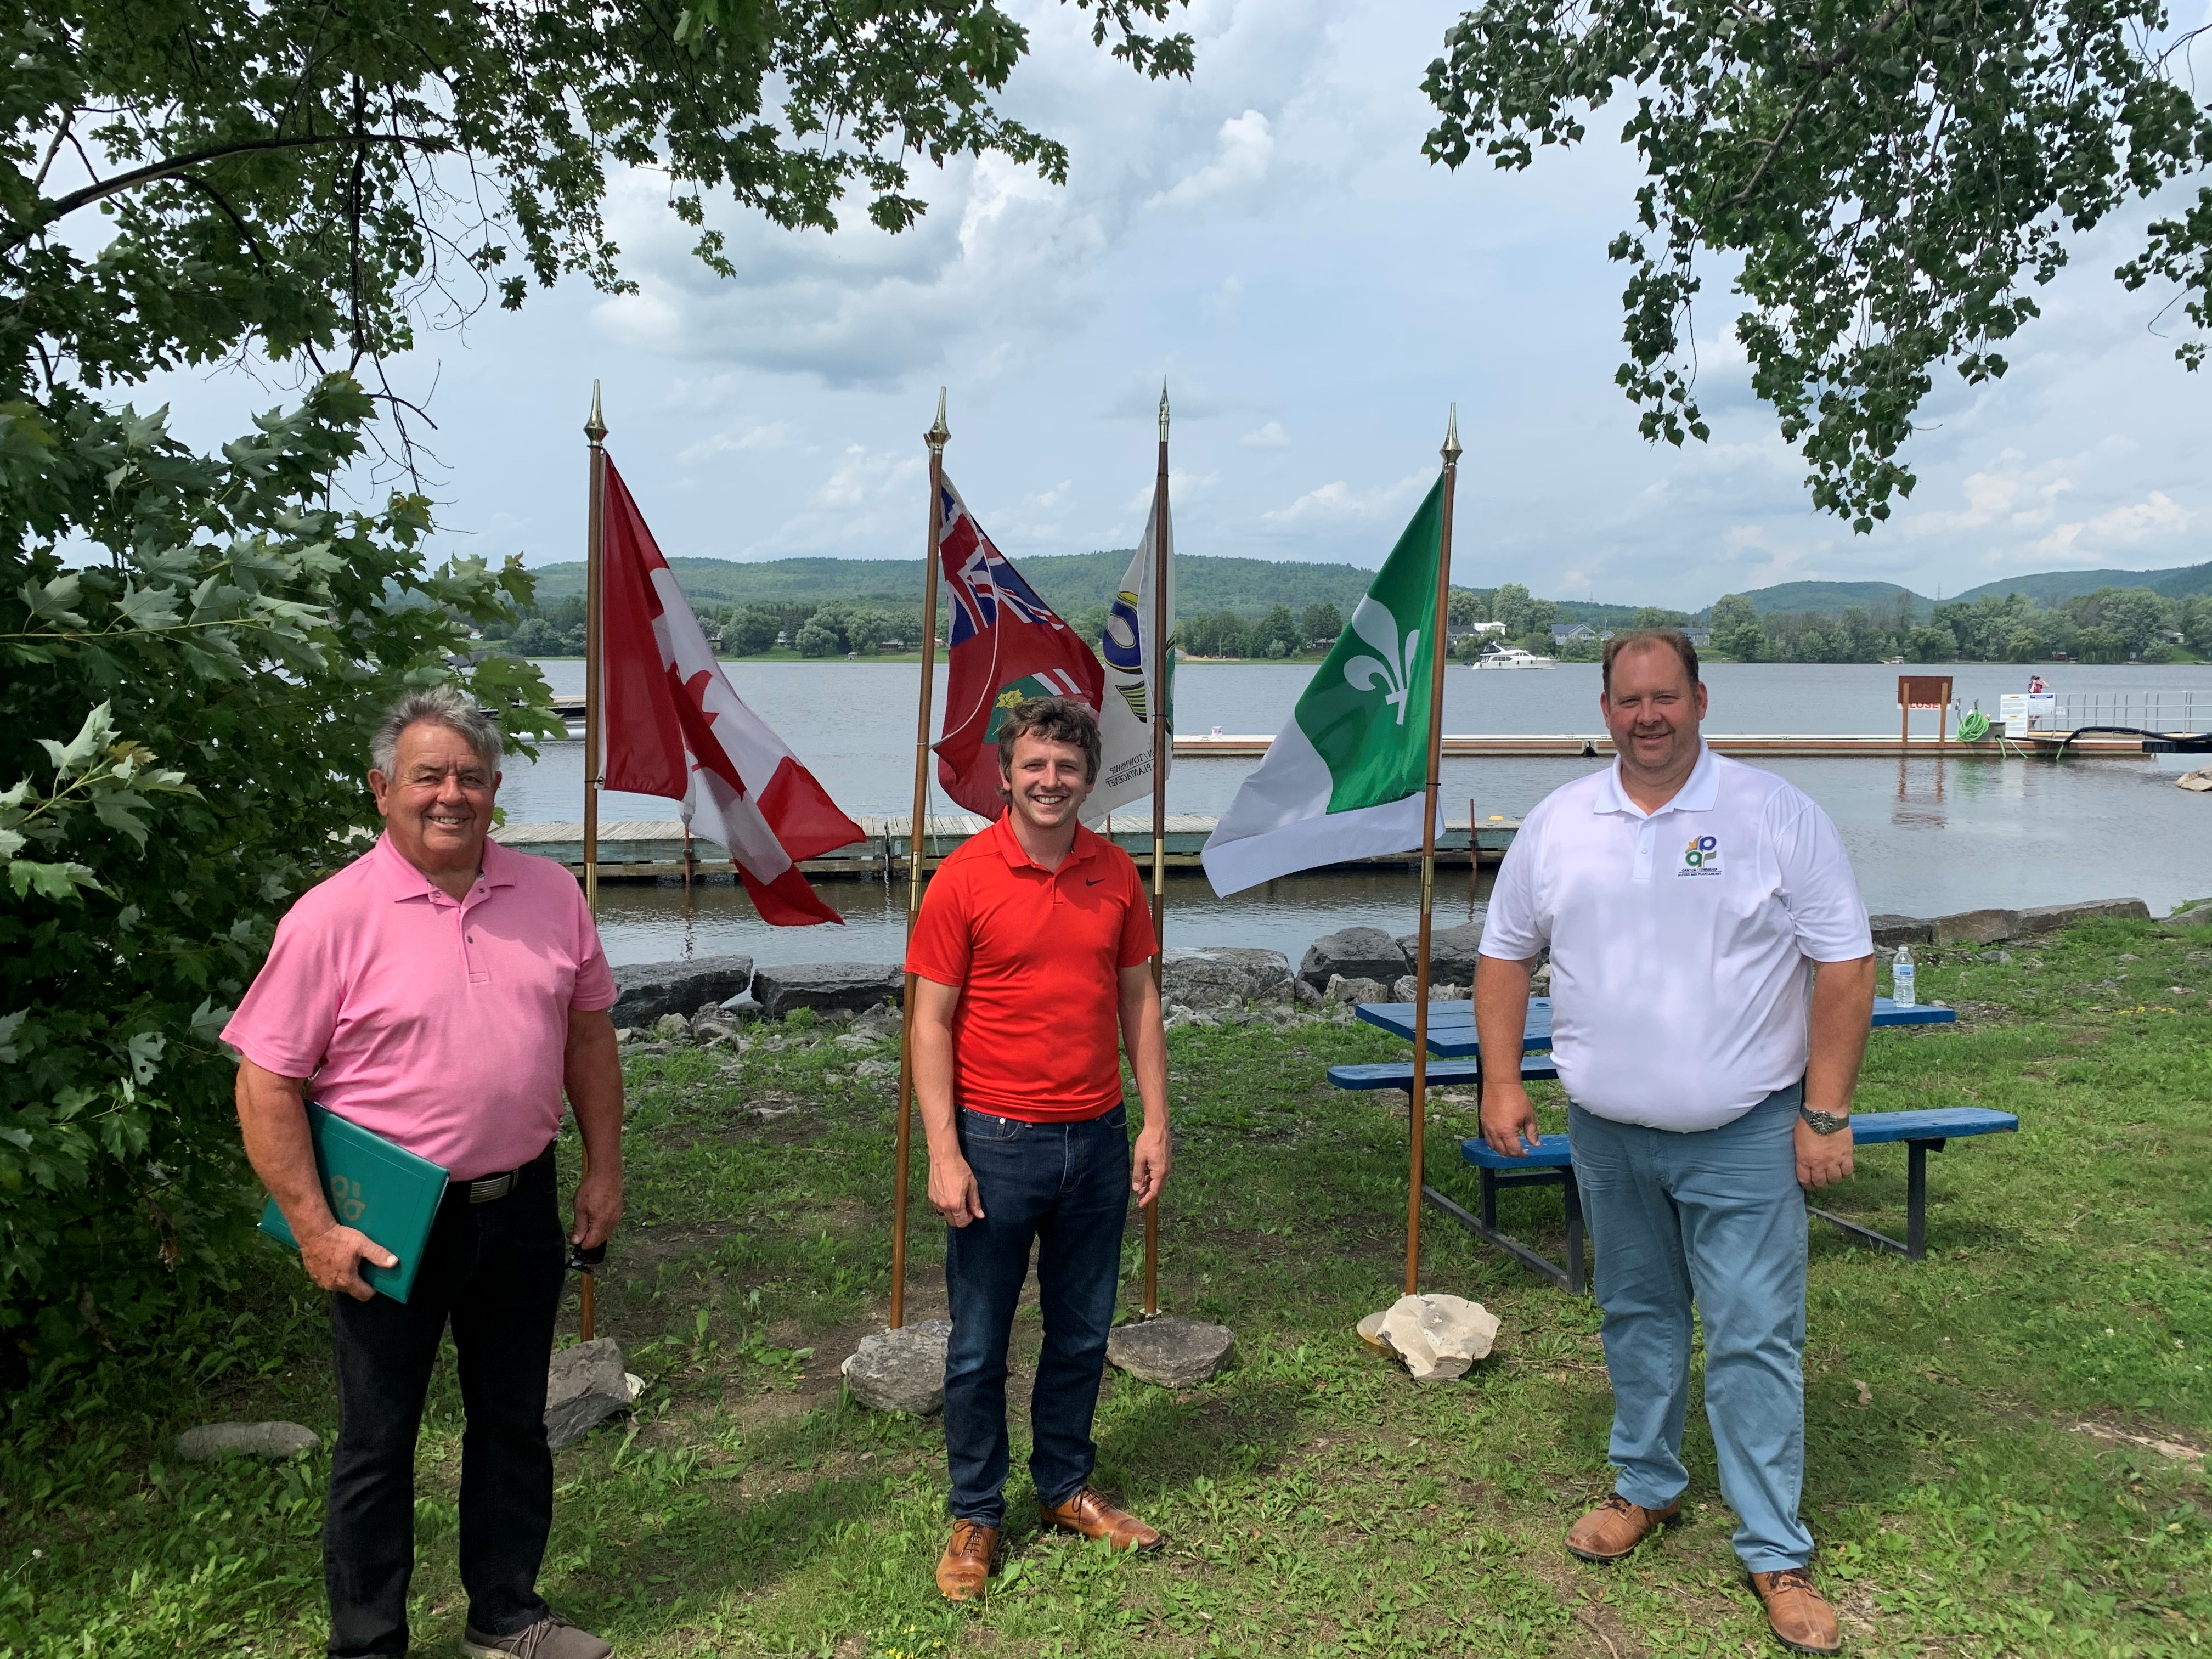 Pictured from left to right: Municipal councillor Yves Laviolette, Liberal MP Francis Drouin, Township of Alfred and Plantagenet Mayor Stephane Sarrazin with the Ottawa River in the background, on an overcast day.